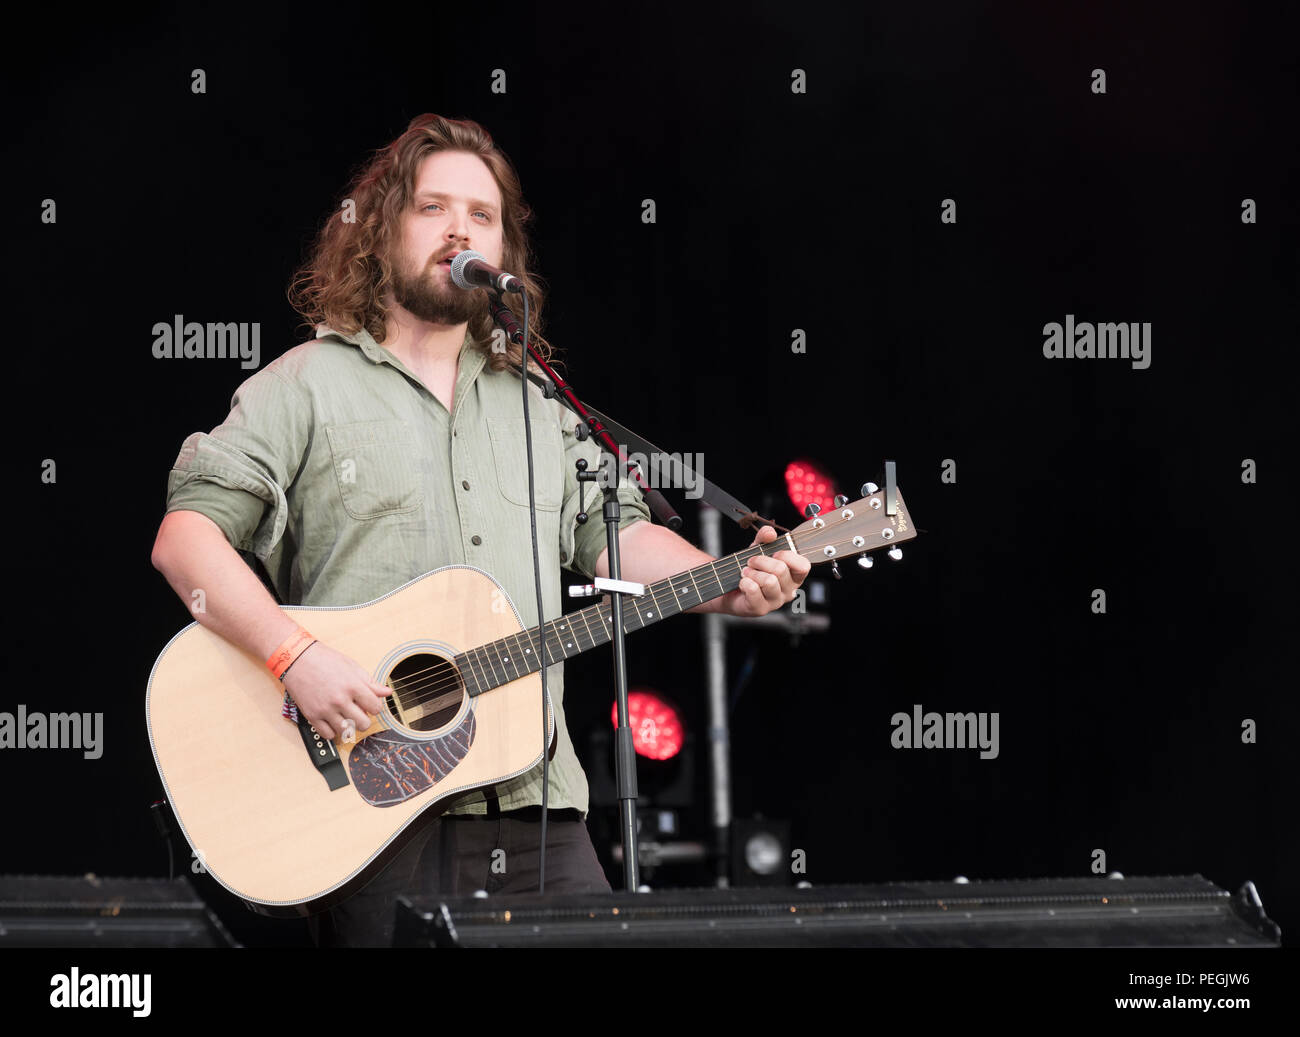 Will Varley performing at Fairport's Cropredy Convention, England, UK. August 11, 2018 - Stock Image